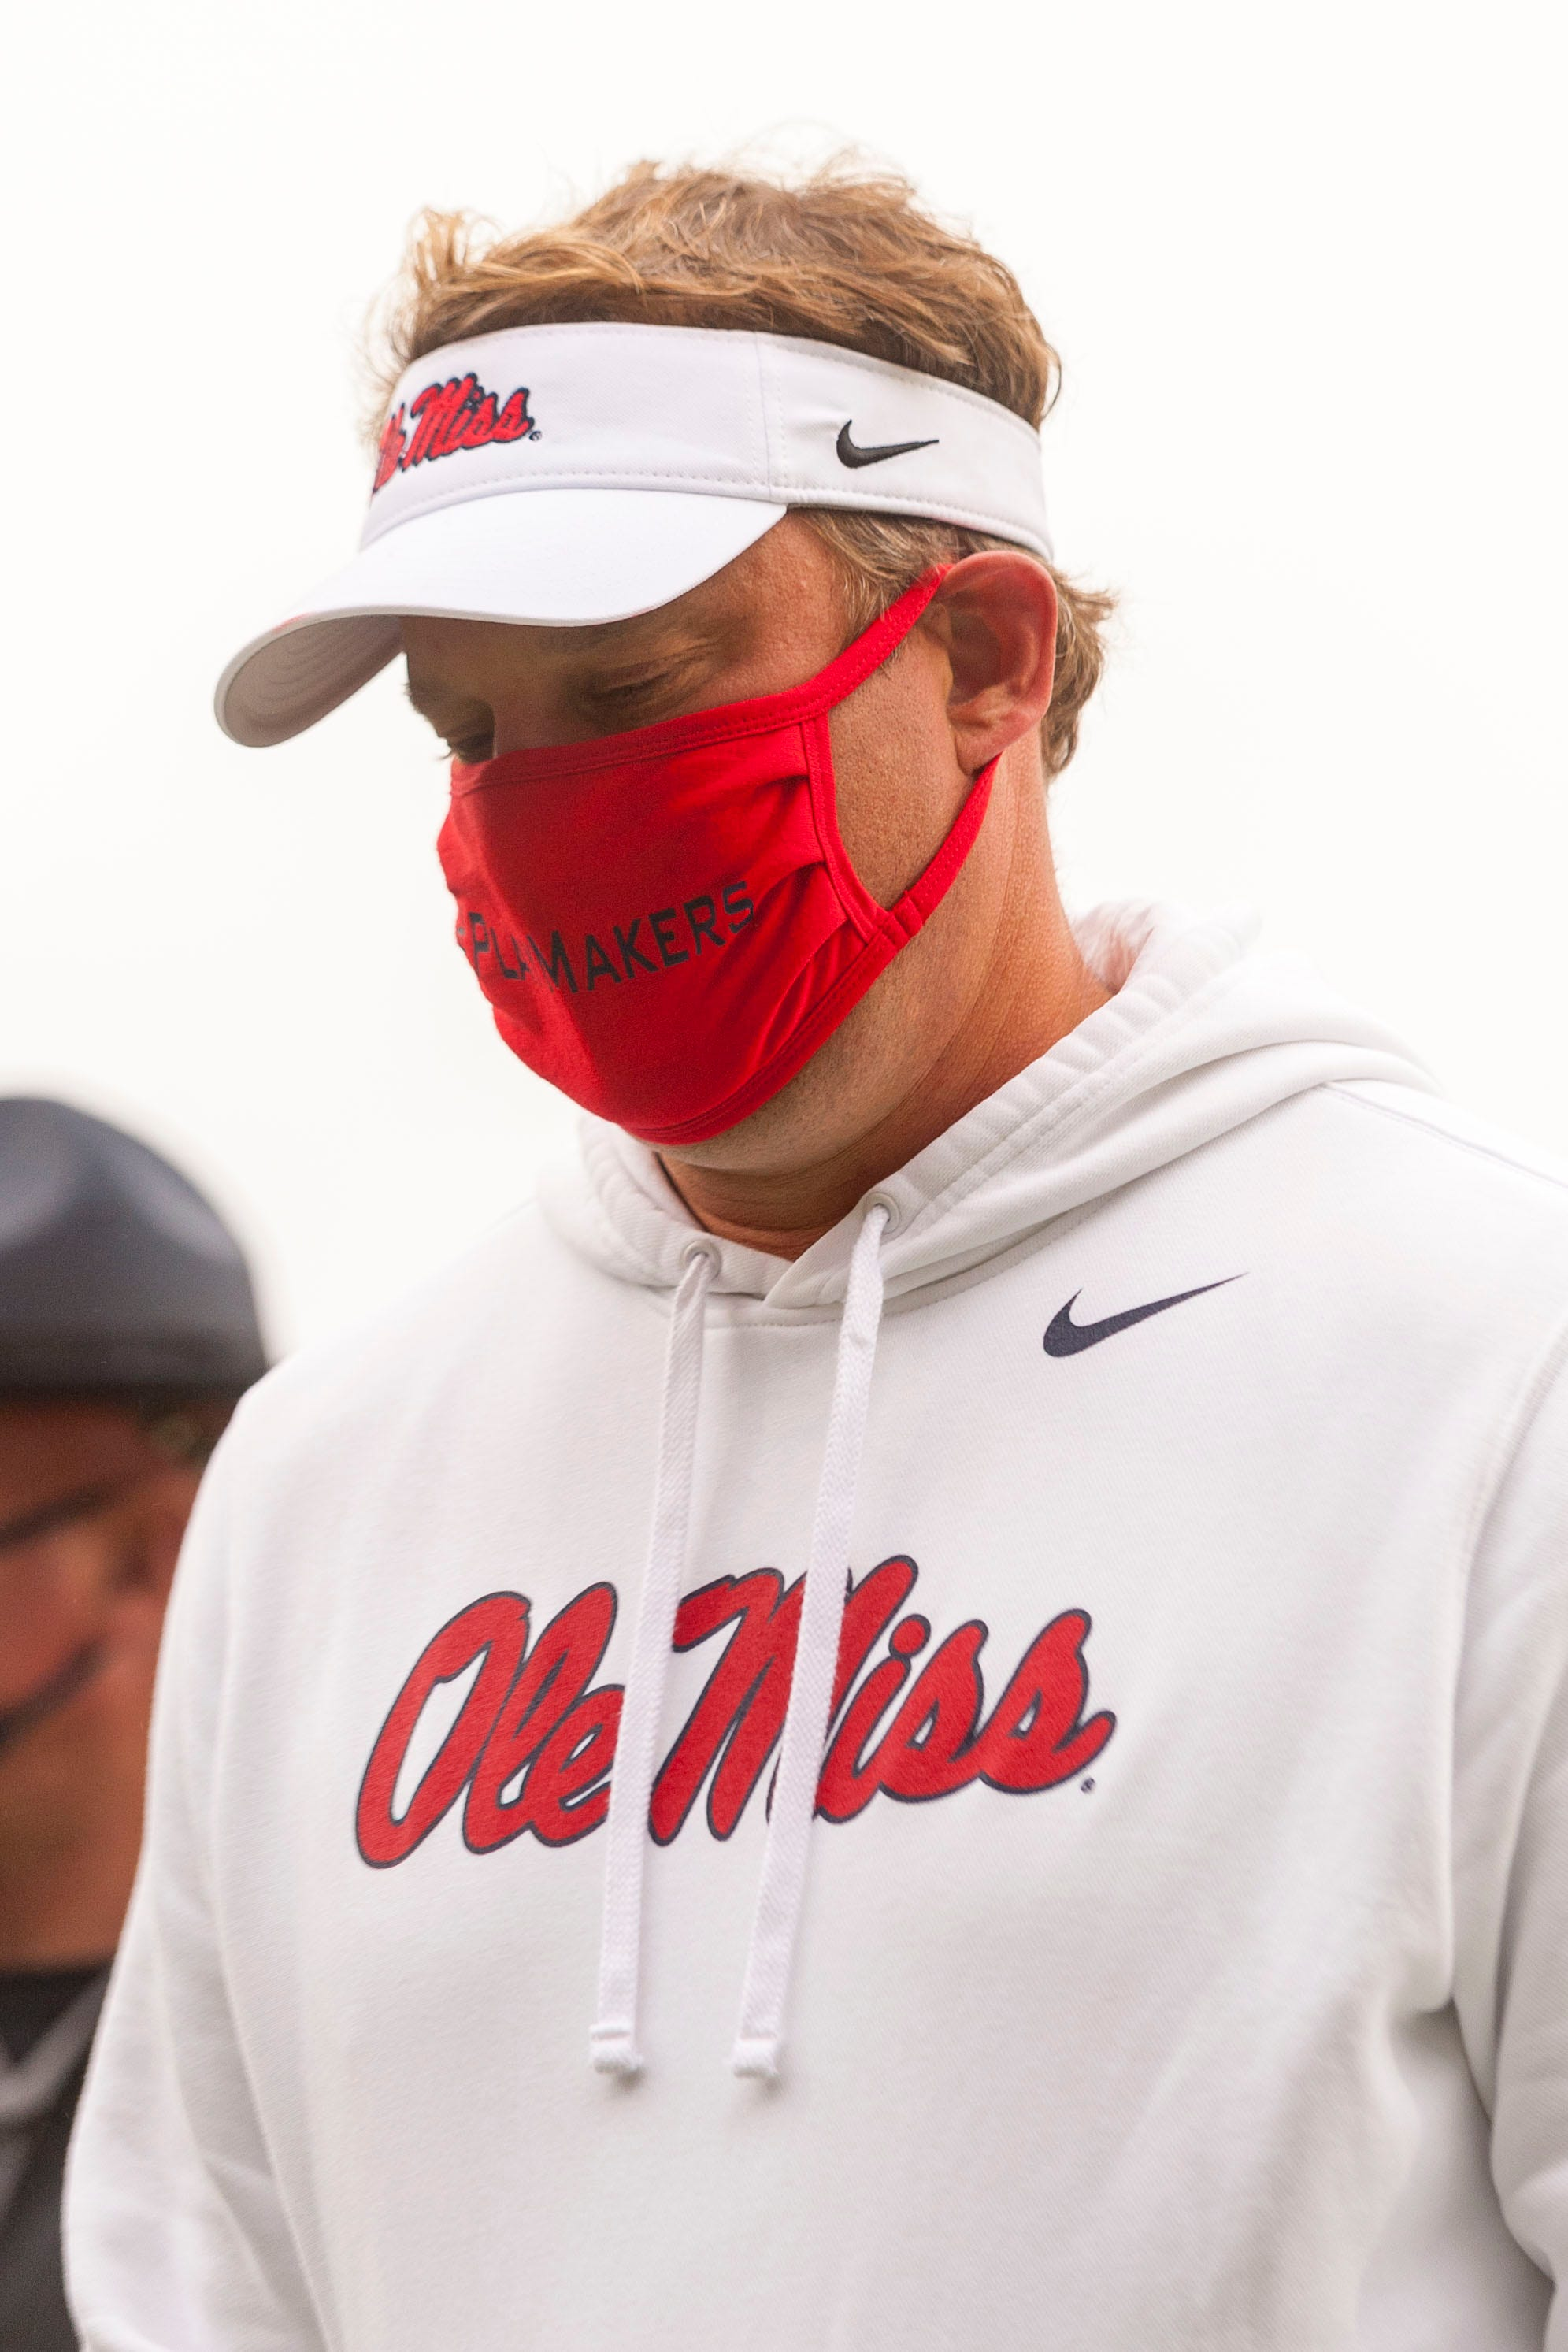 Lane Kiffin jokes about paying SEC fine in pennies after league admits it was wrong